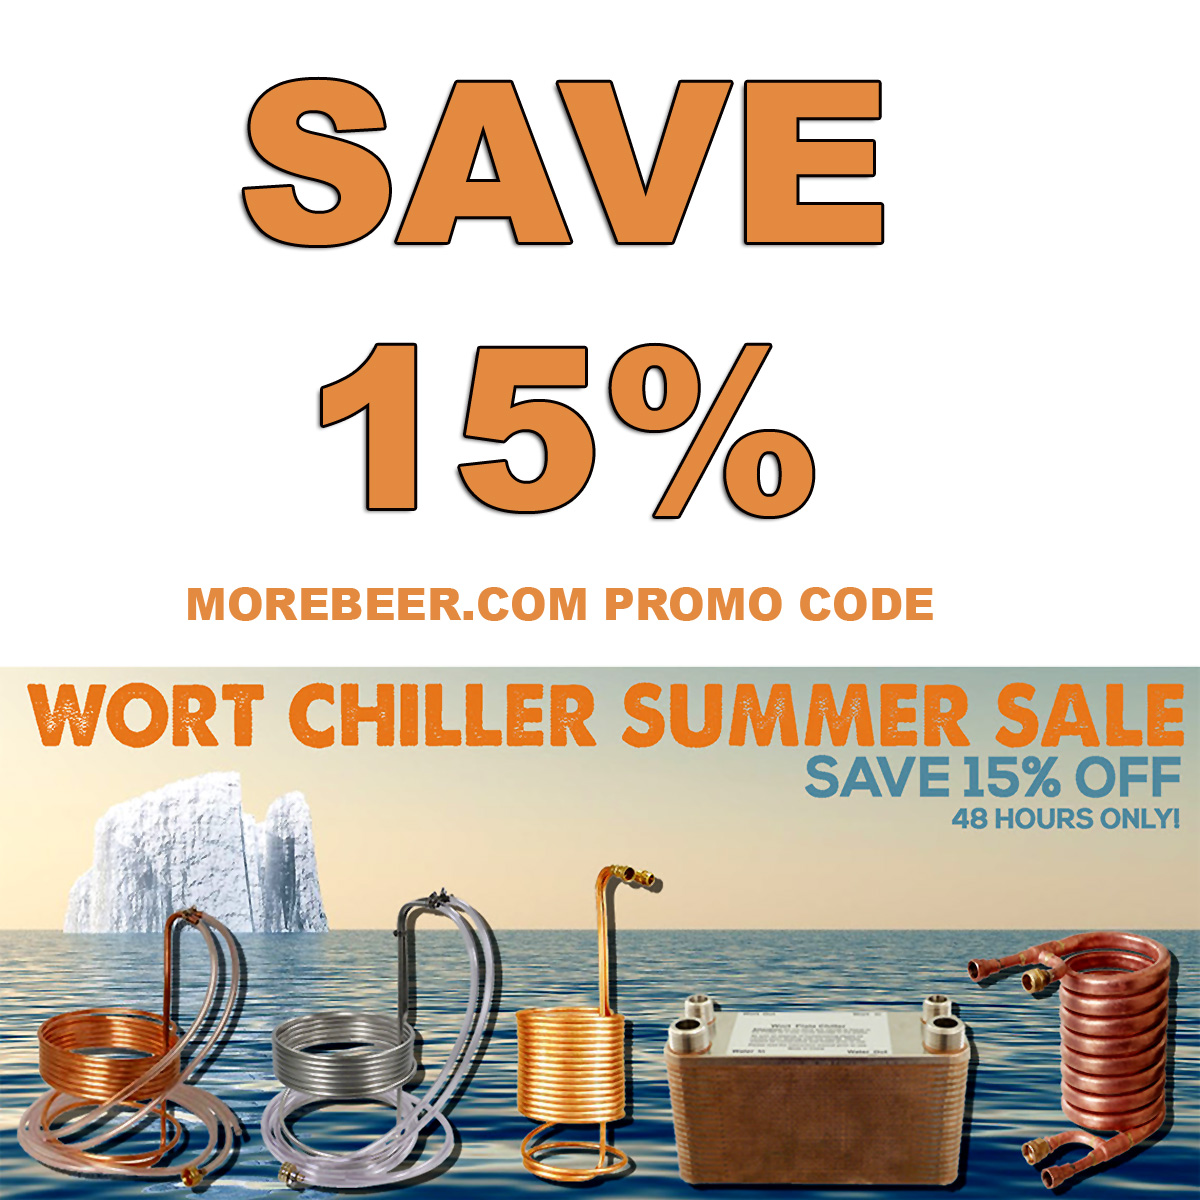 MoreBeer Save 15% On Wort Chillers at MoreBeer.com With Promo Code Coupon Code